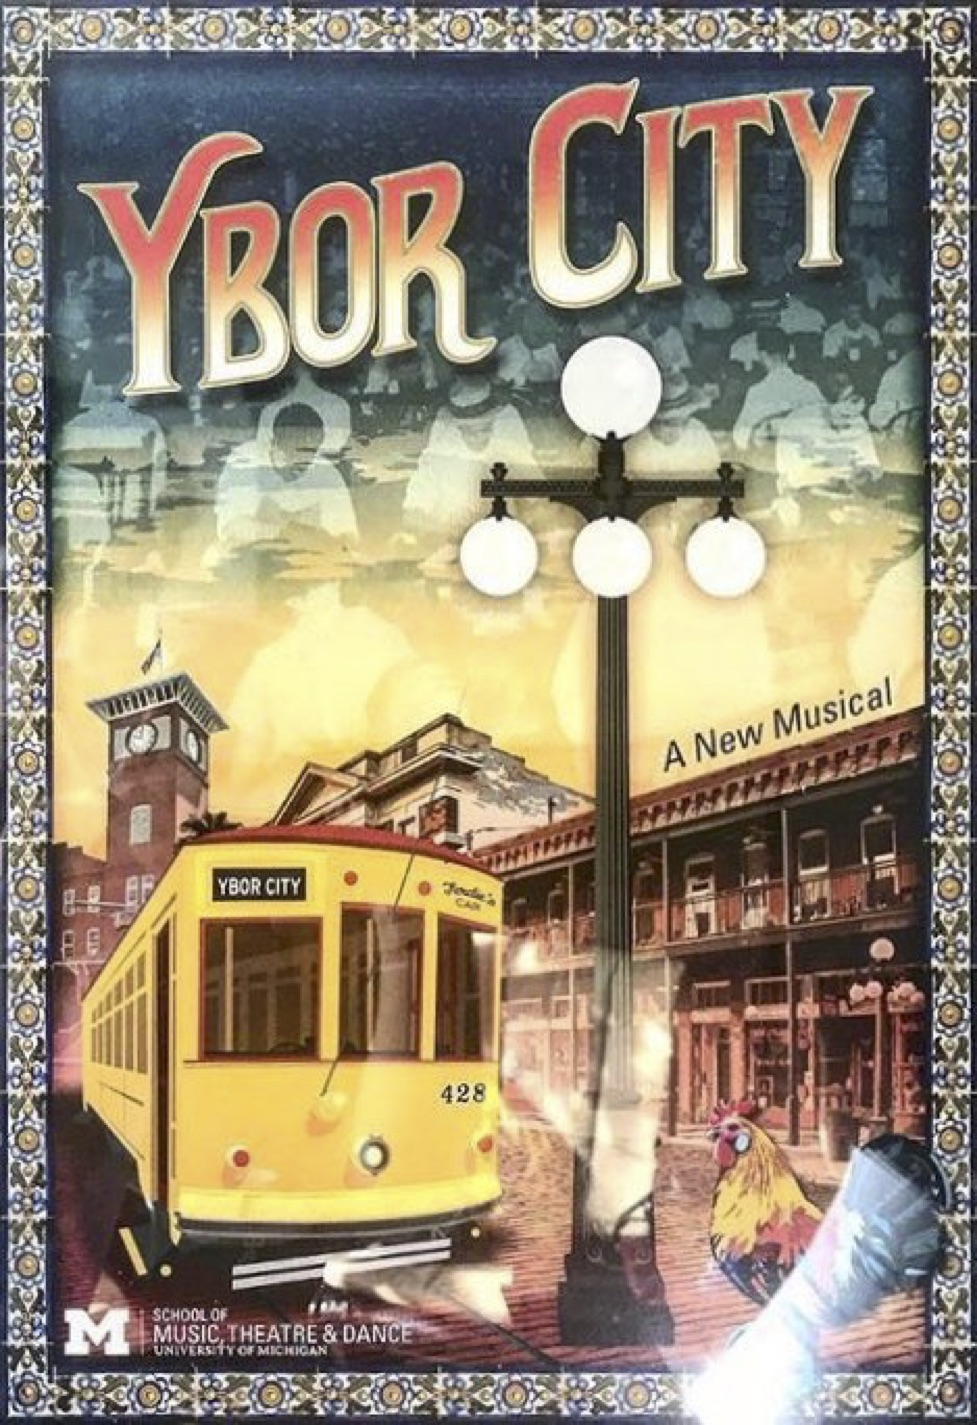 Cubanos, Puros, y Revlolución - February 2018Max will be kicking off the year with a production of a new musical based on a true story, Ybor City, following the unionization of fellow Latinx-Americans in Tampa, Florida oppressed by the class structure and racism in The Fuente Cigar Factory in the 1920s.